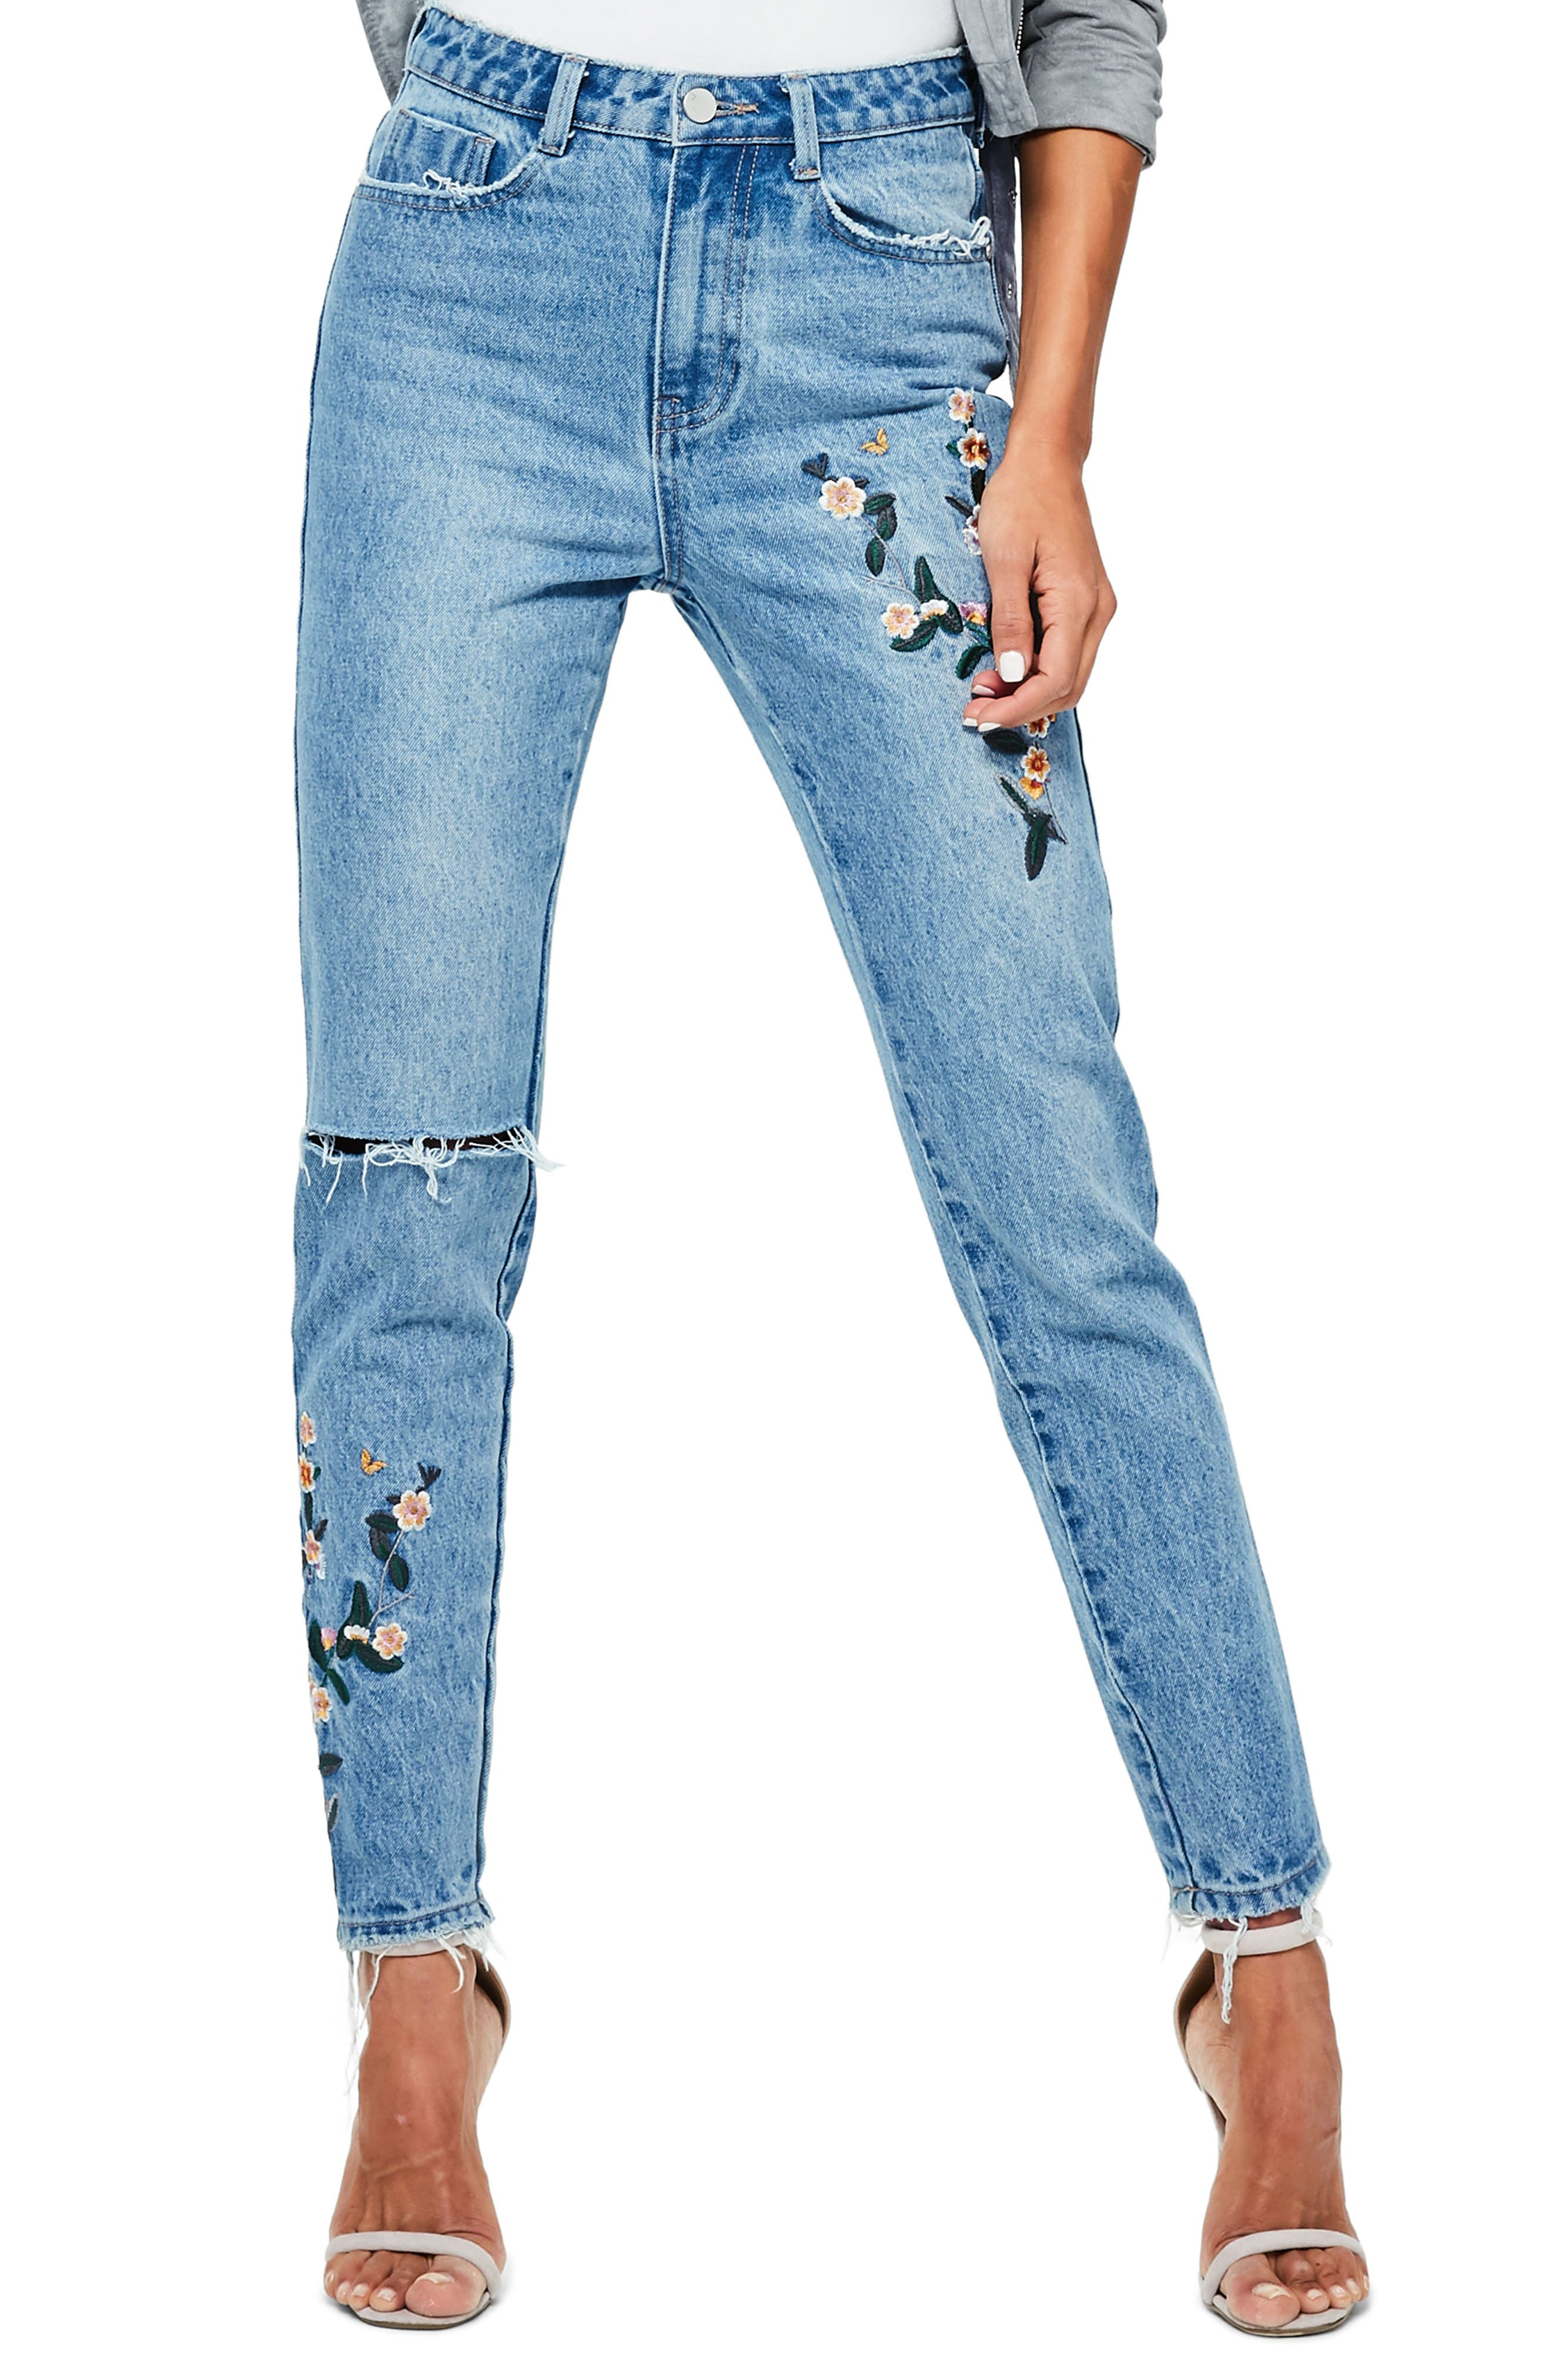 MISSGUIDED, Riot Ripped High Waist Embroidered Jeans, Main thumbnail 1, color, 400